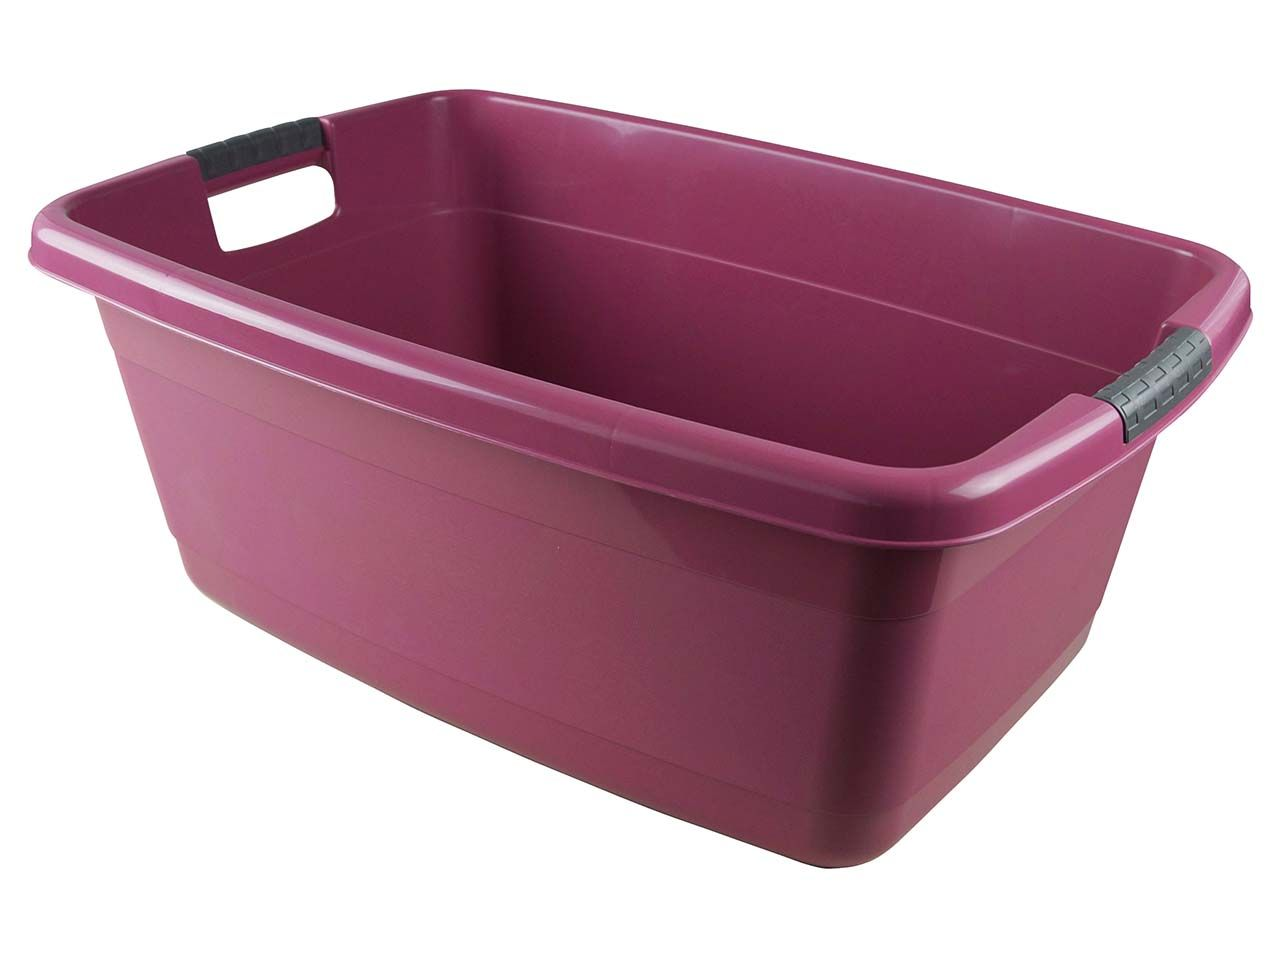 "Gies Wanne ""ecoline"" 45 l brombeere 7236 brombeere"